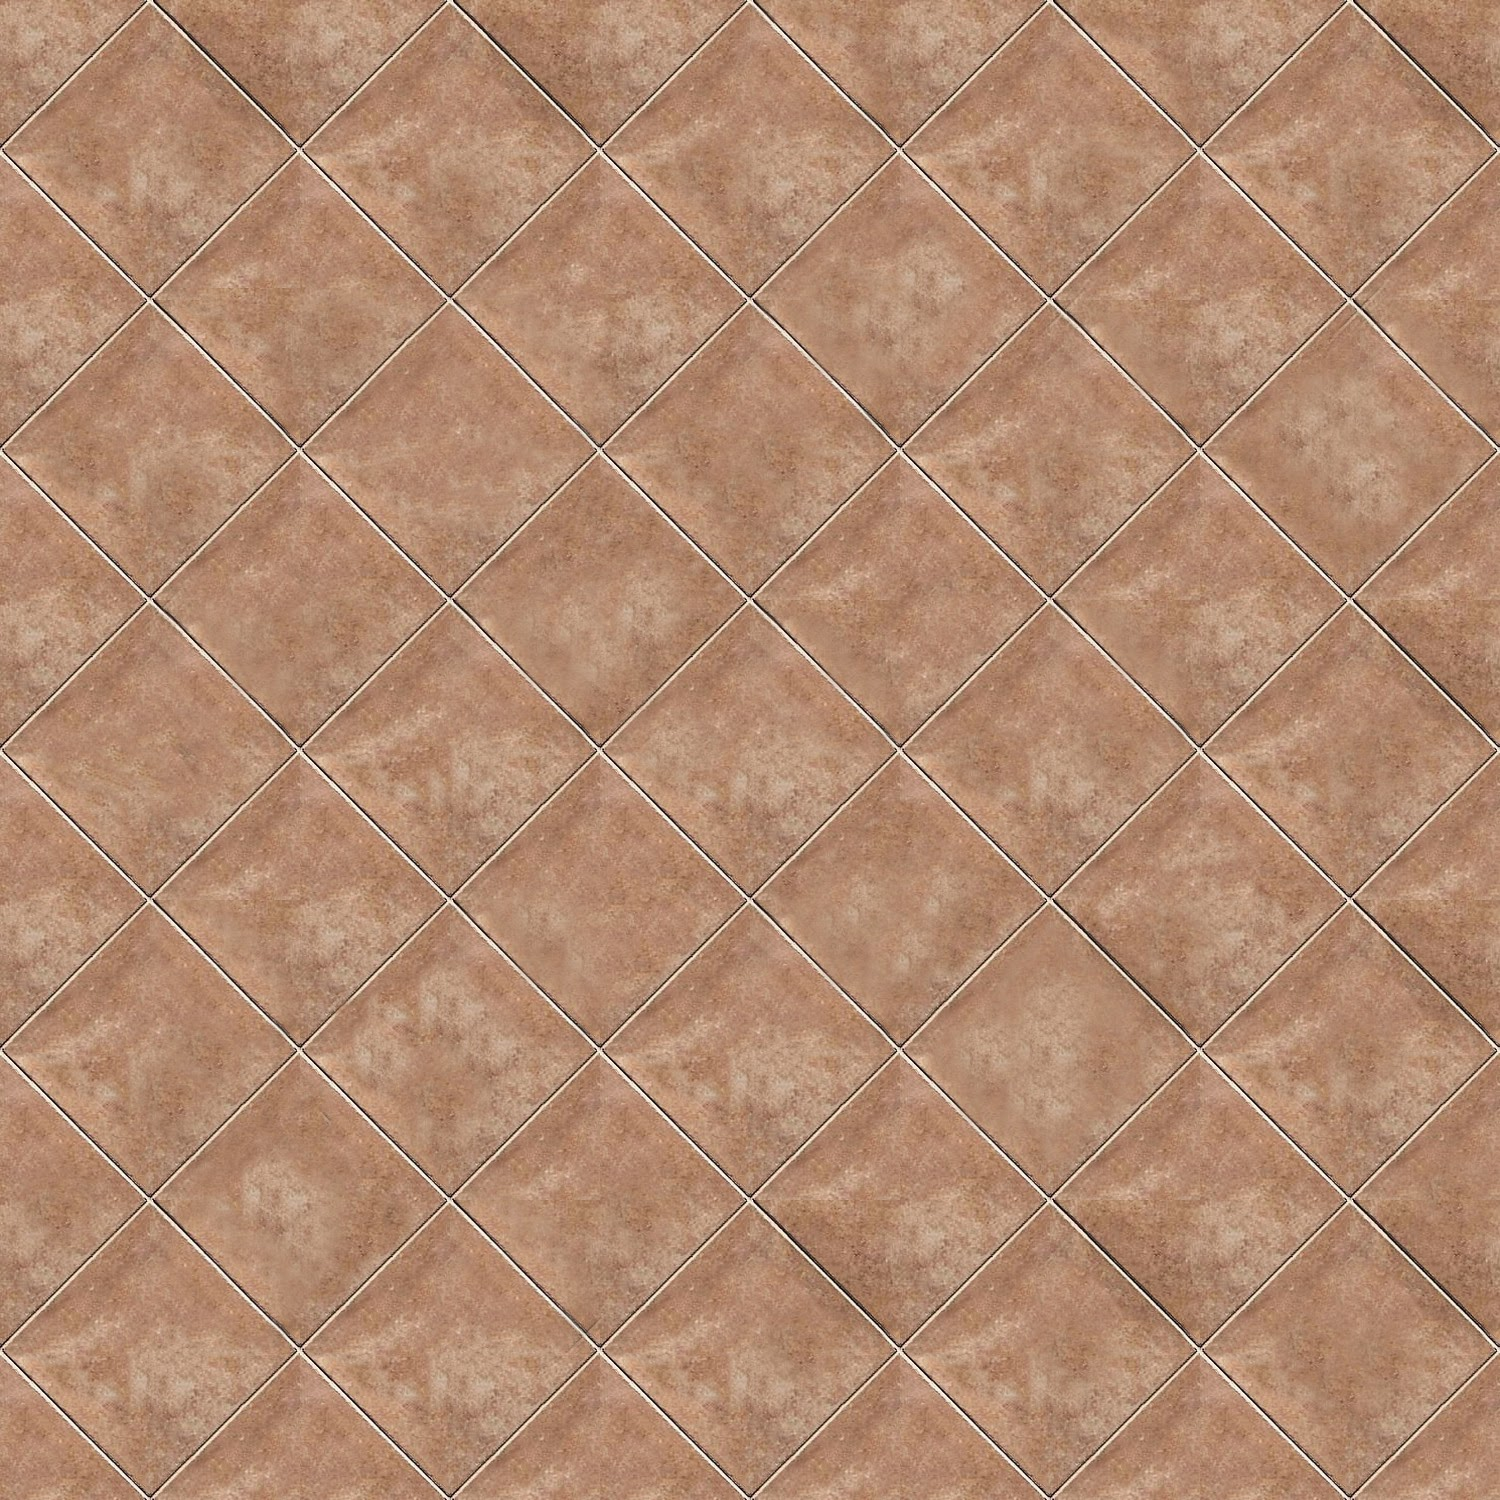 Free seamless textures for computer graphics ceramic tile for Glass tile texture